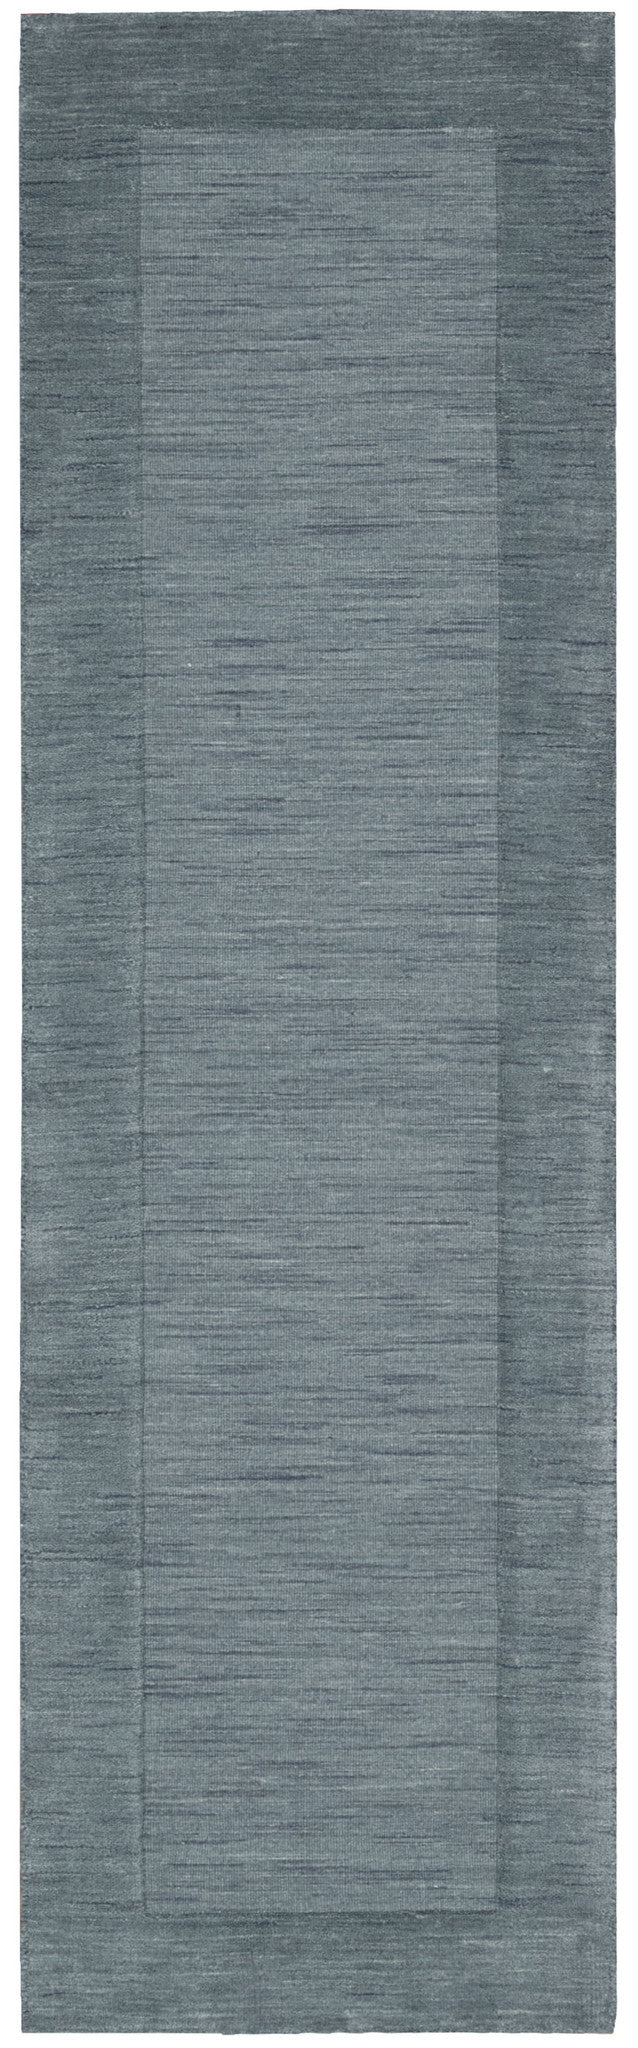 Barclay Butera Ripple Spa Area Rug By Nourison RIP01 SPA (Runner) | BOGO USA